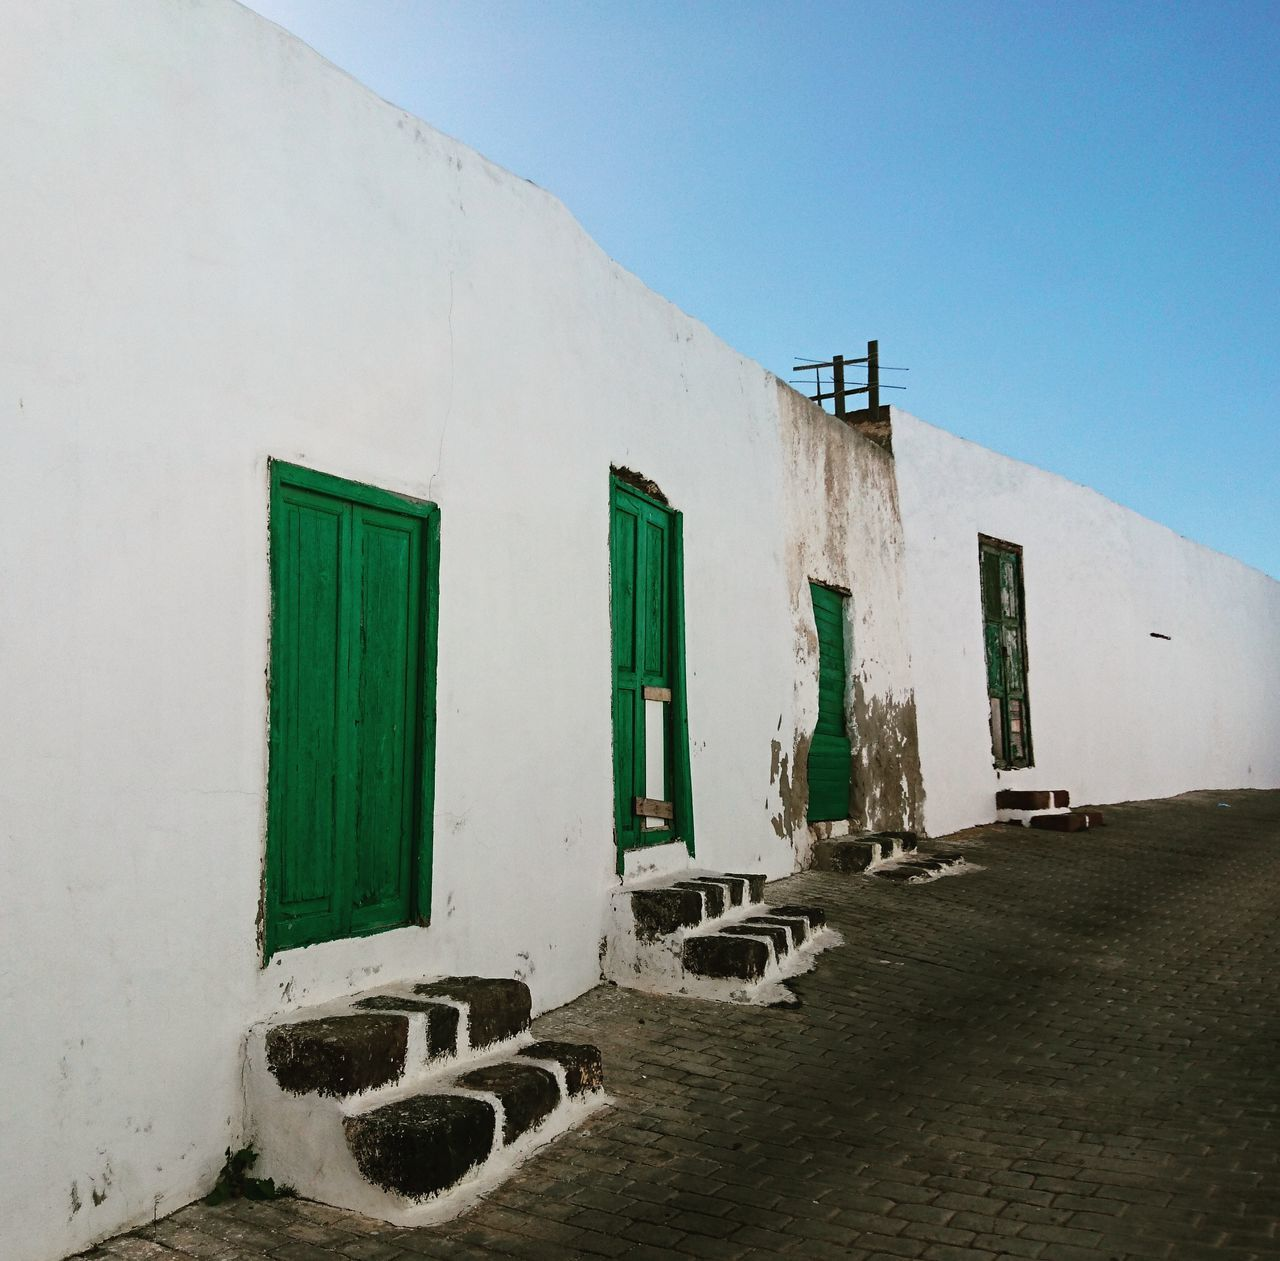 Building Exterior Architecture Green Color Outdoors Sky Lanzarote-Canarias Teguise White Wall White City Green Doors Scenics Wall Old Buildings Architecture